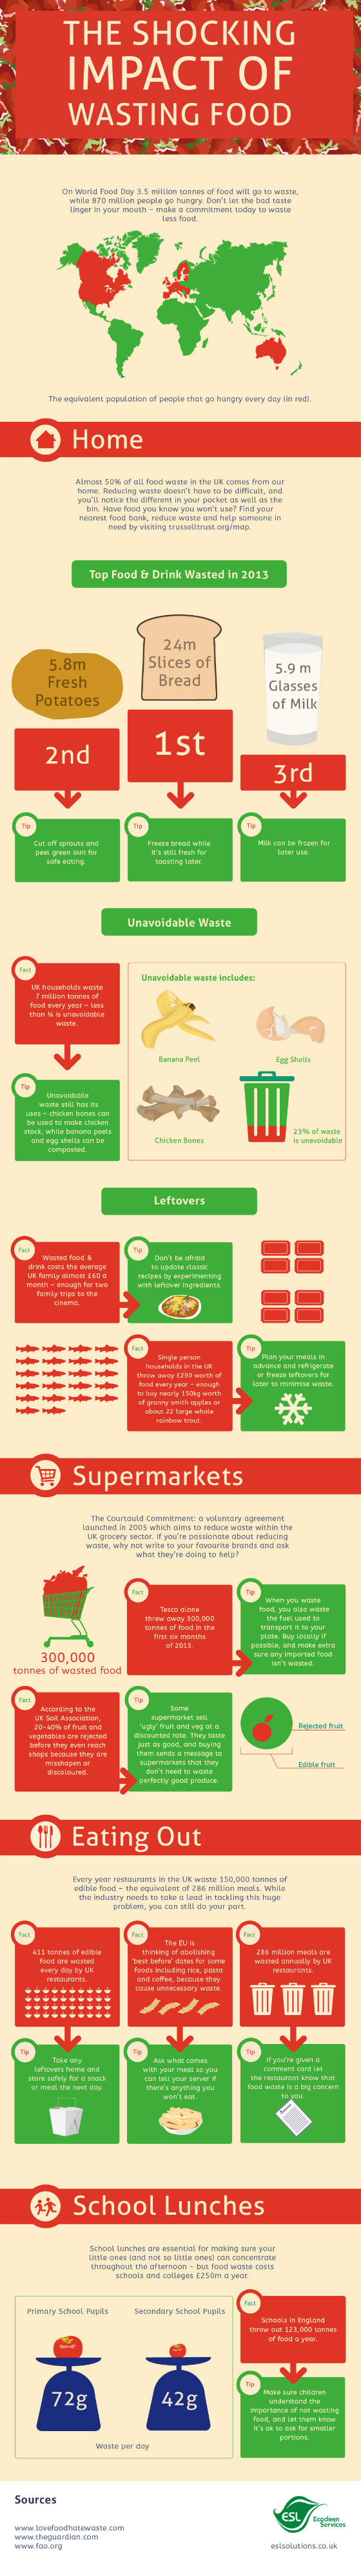 food waste facts uk infographic